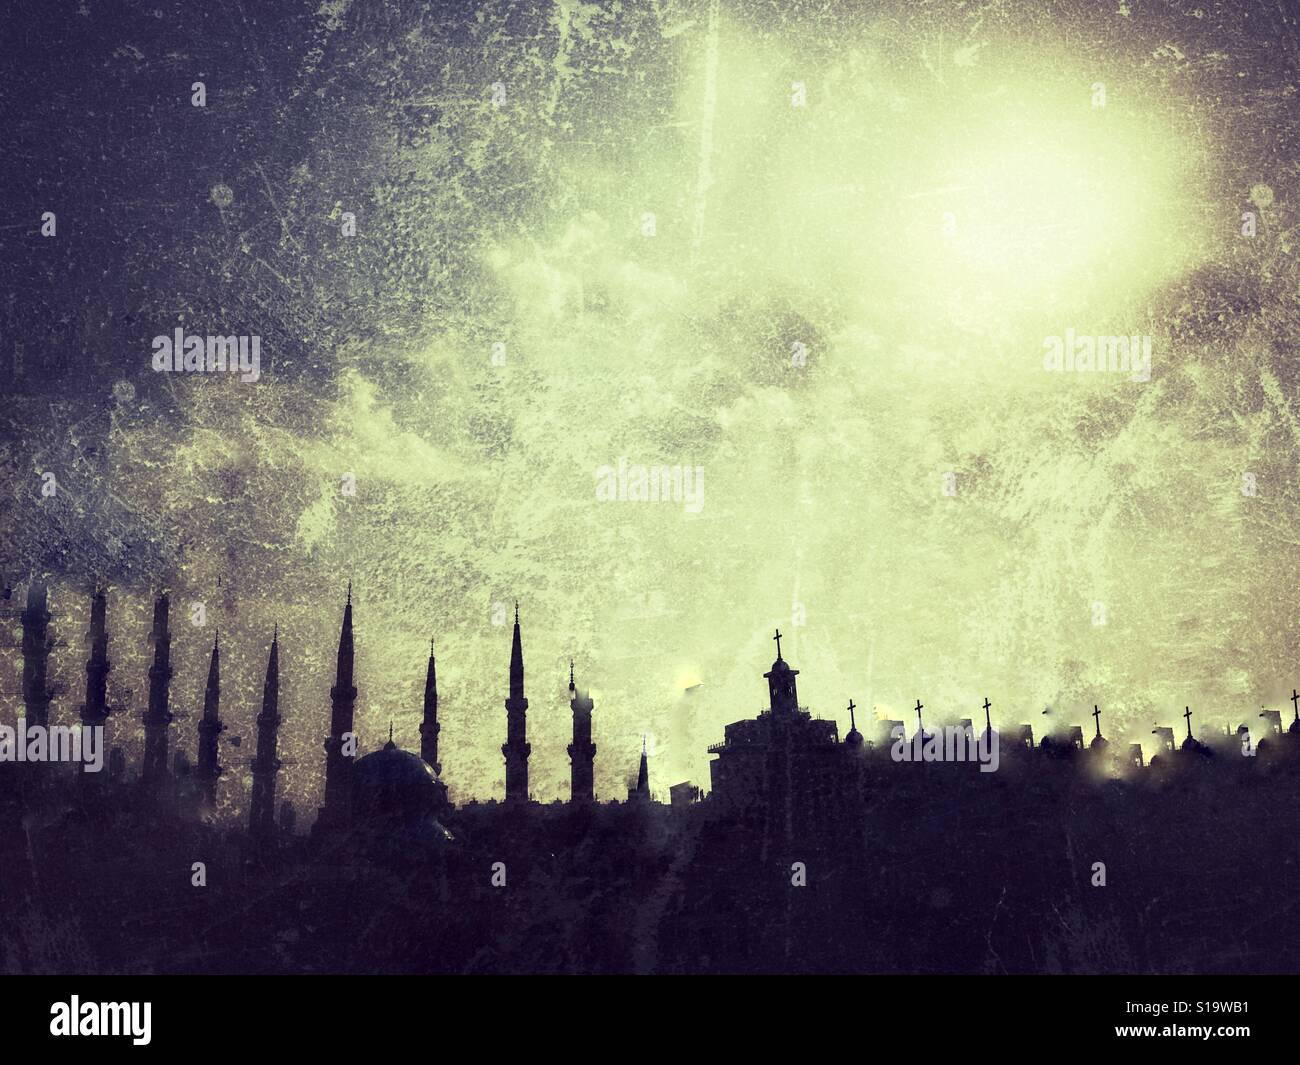 Islam and Christianity - Stock Image